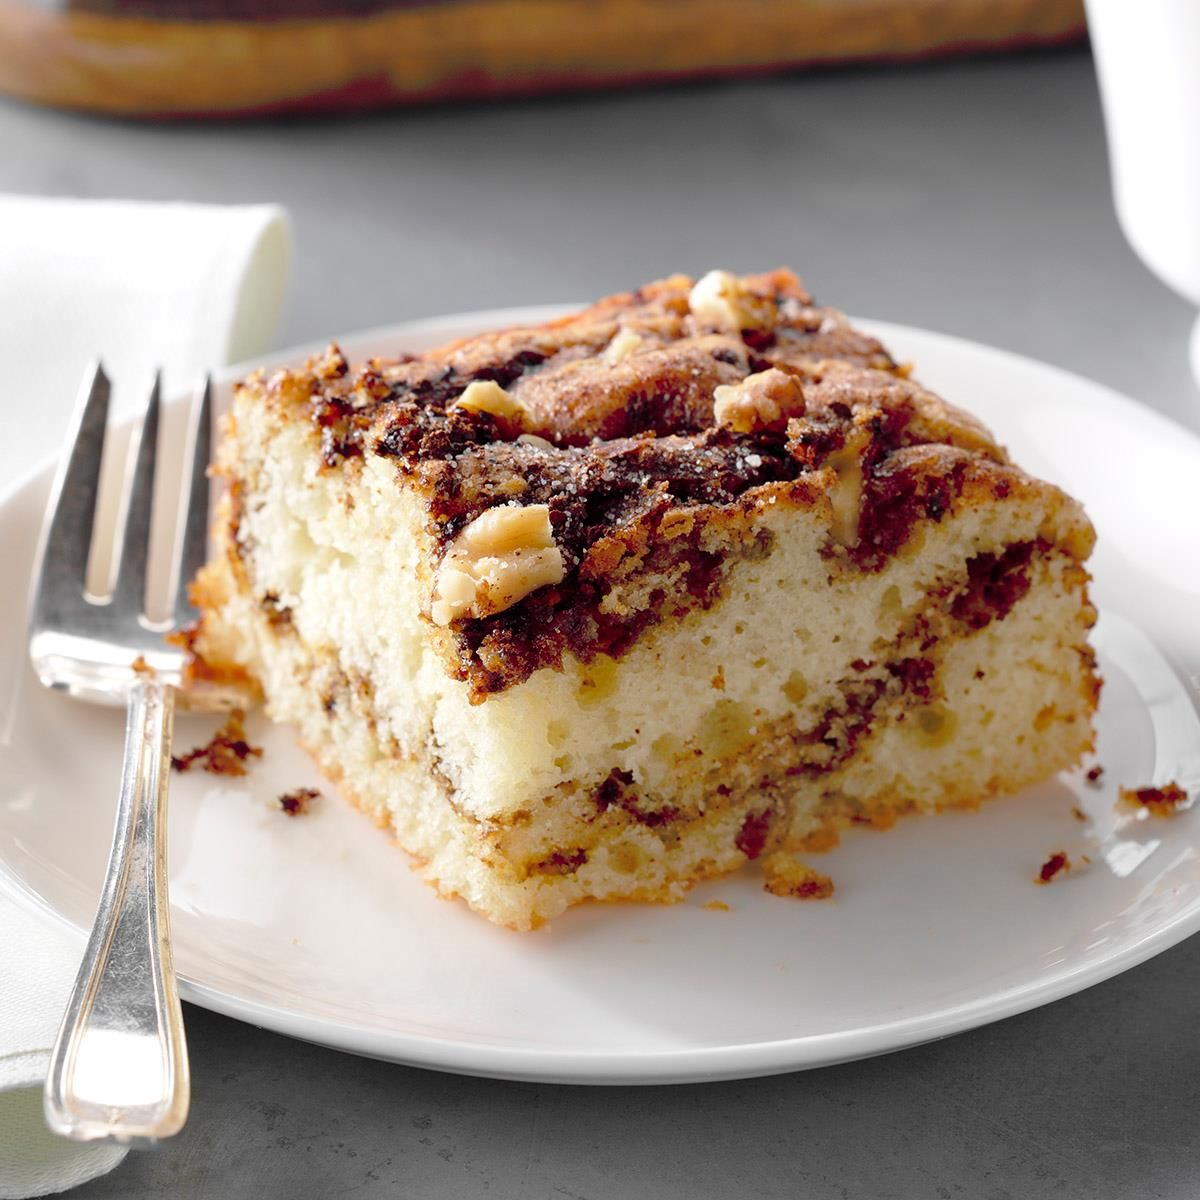 Coffee Lover's Coffee Cake Recipe (With images) Coffee